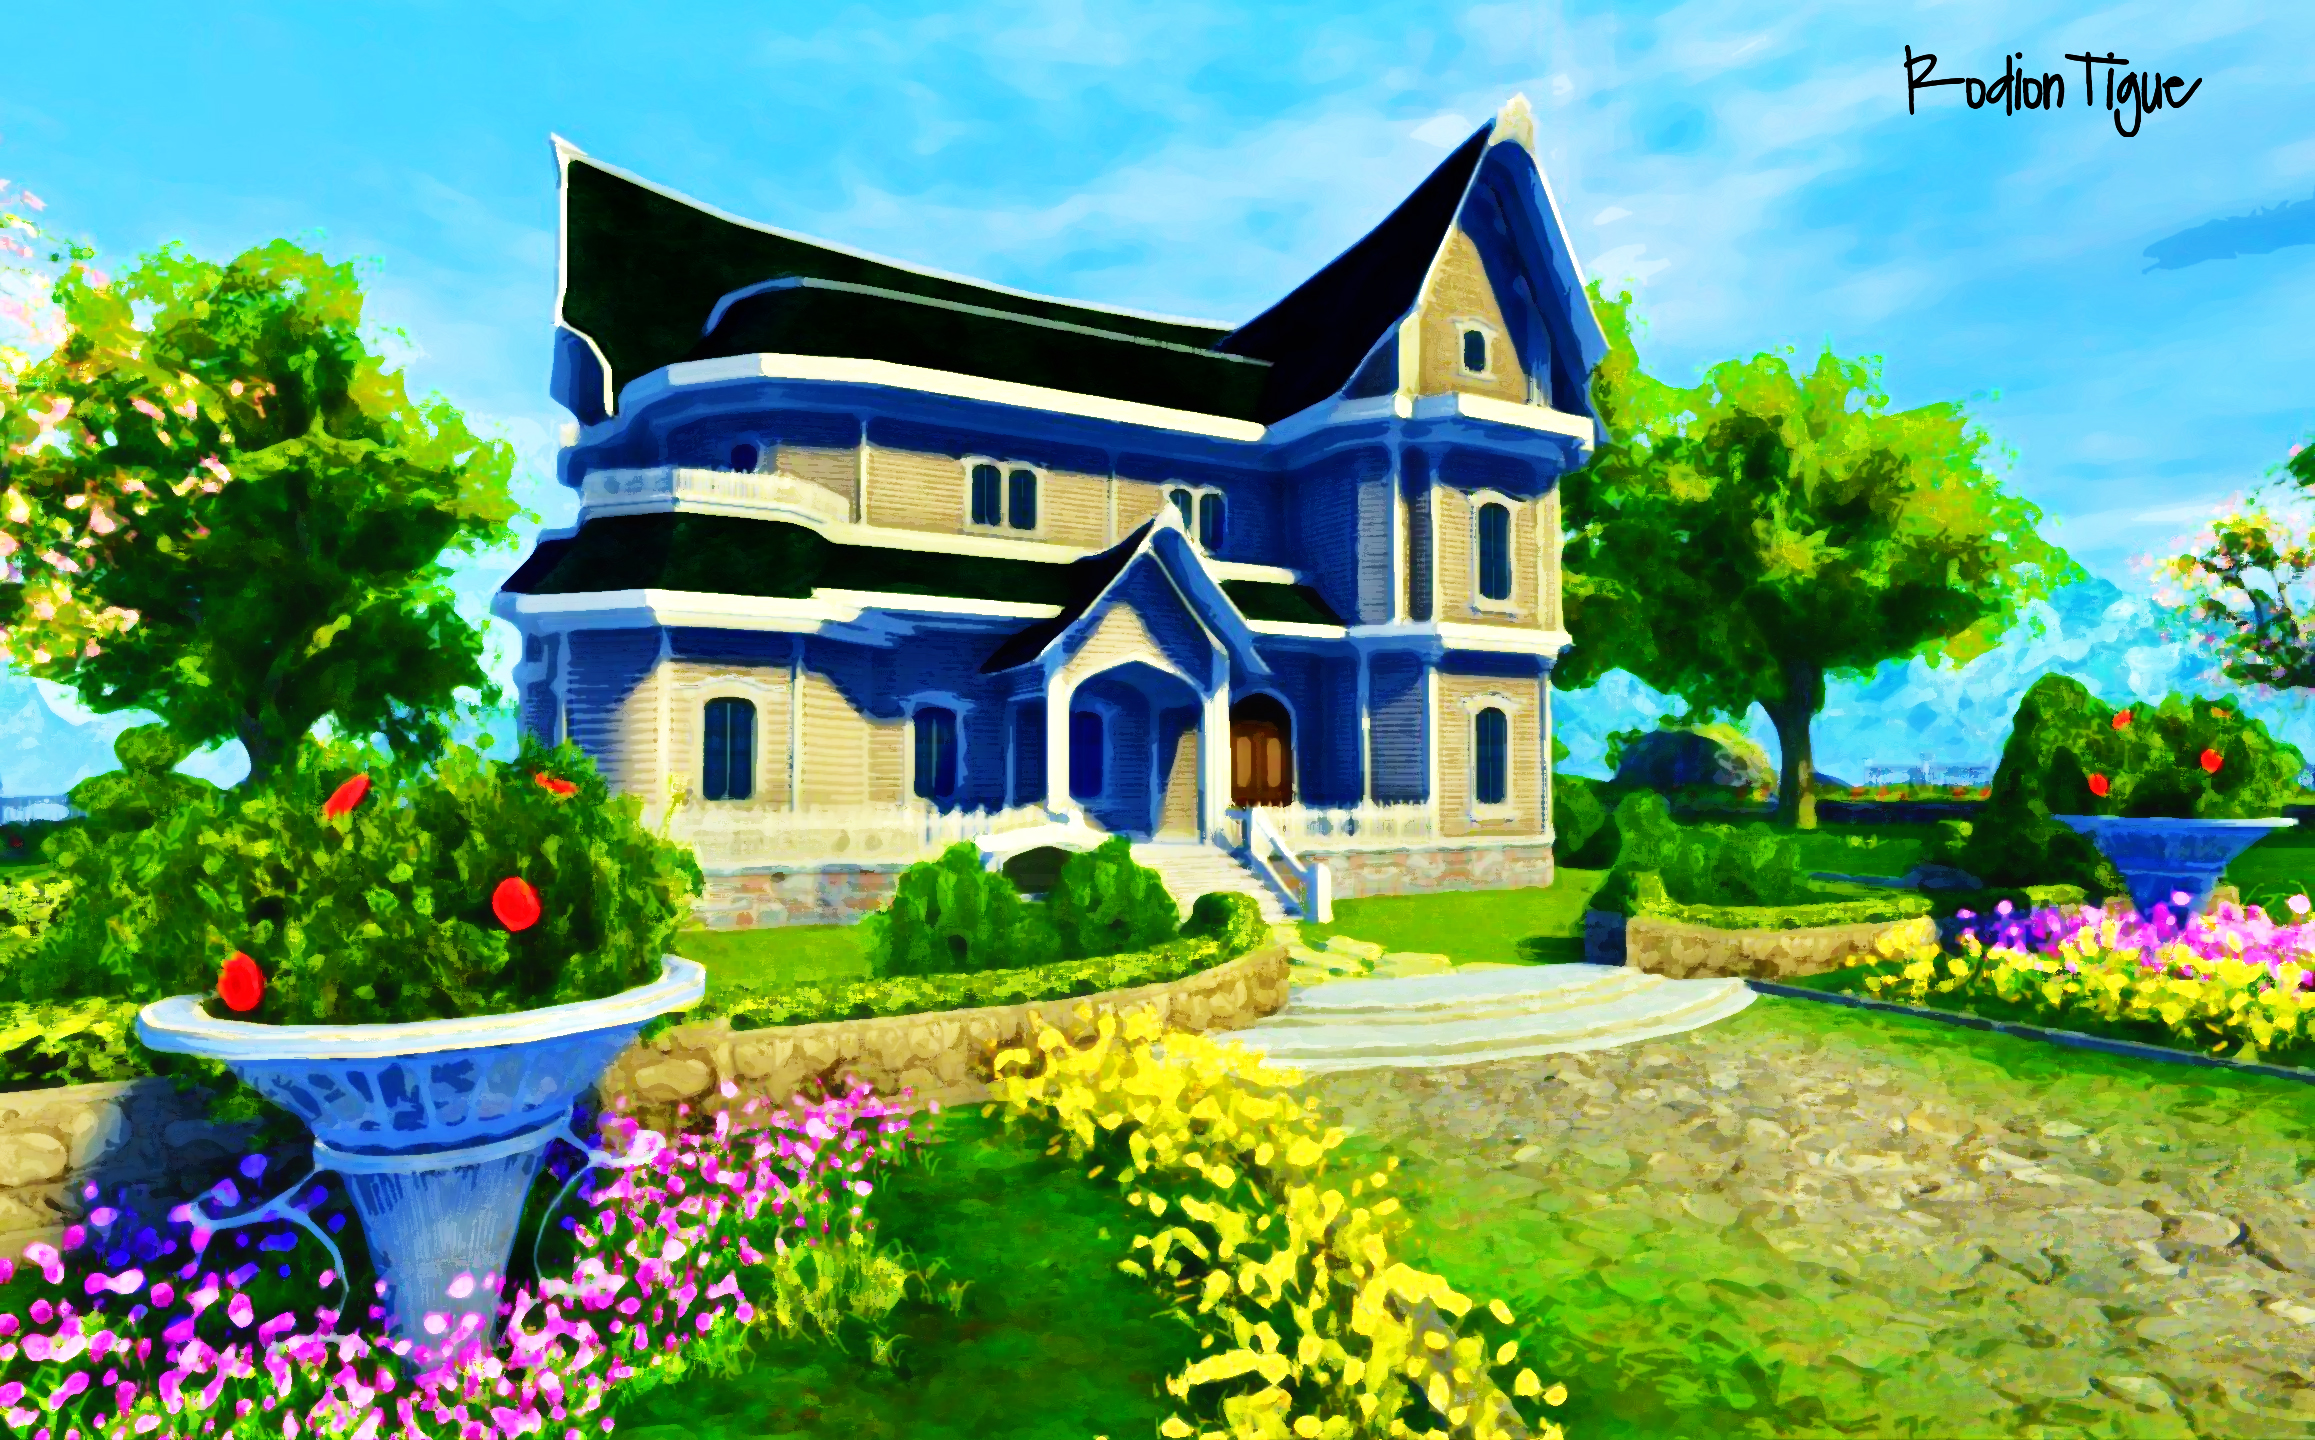 Dream home wallpaper by rodiontigue on deviantart for Beautiful houses hd pics